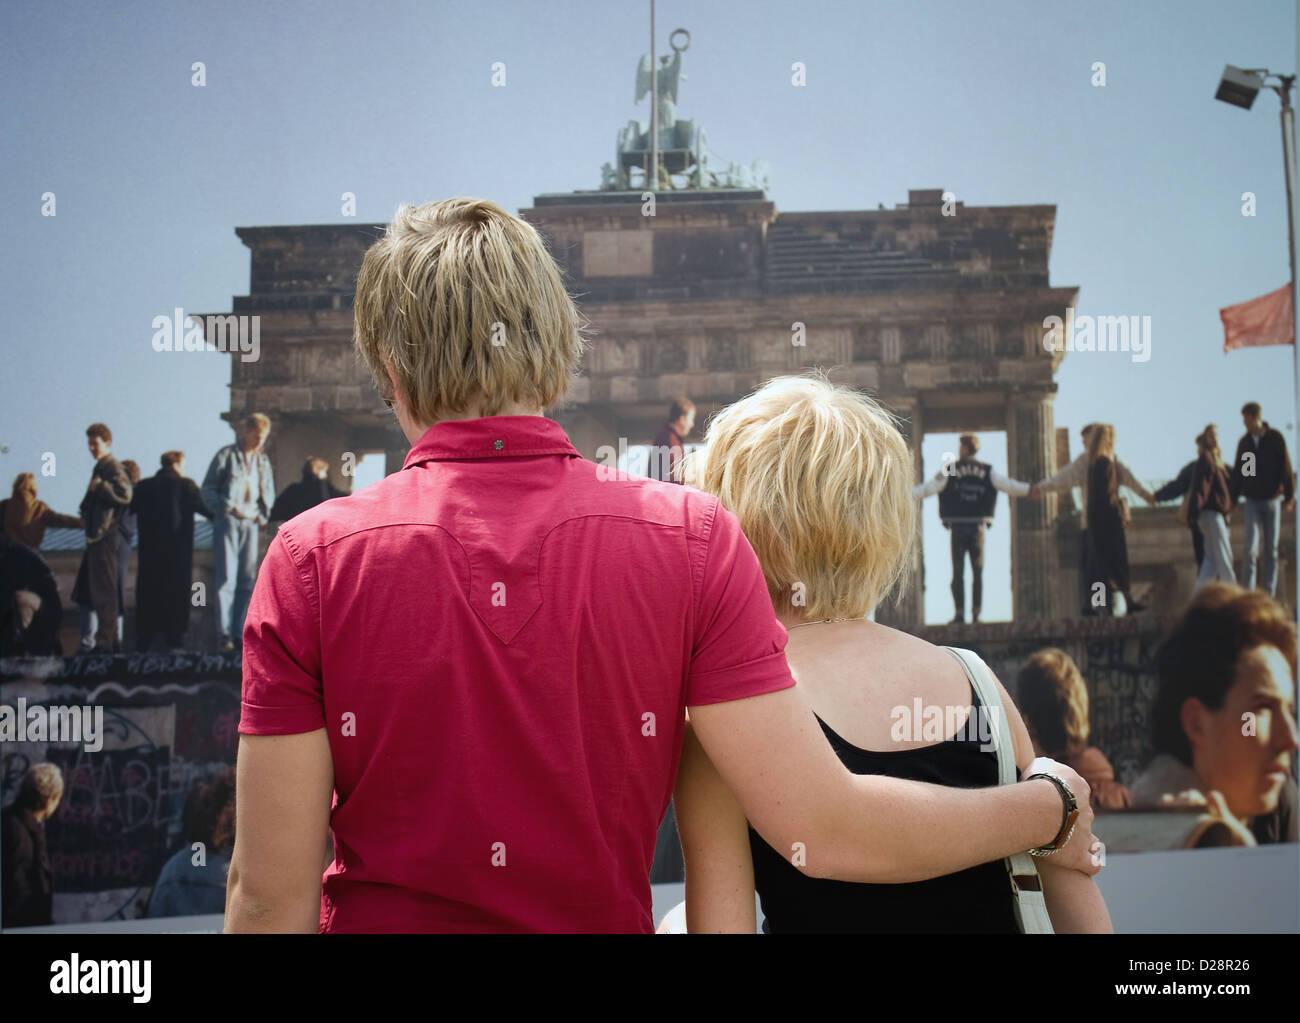 Berlin, Germany, at the exhibition Paerchen 20 Year anniversary at Alexanderplatz - Stock Image